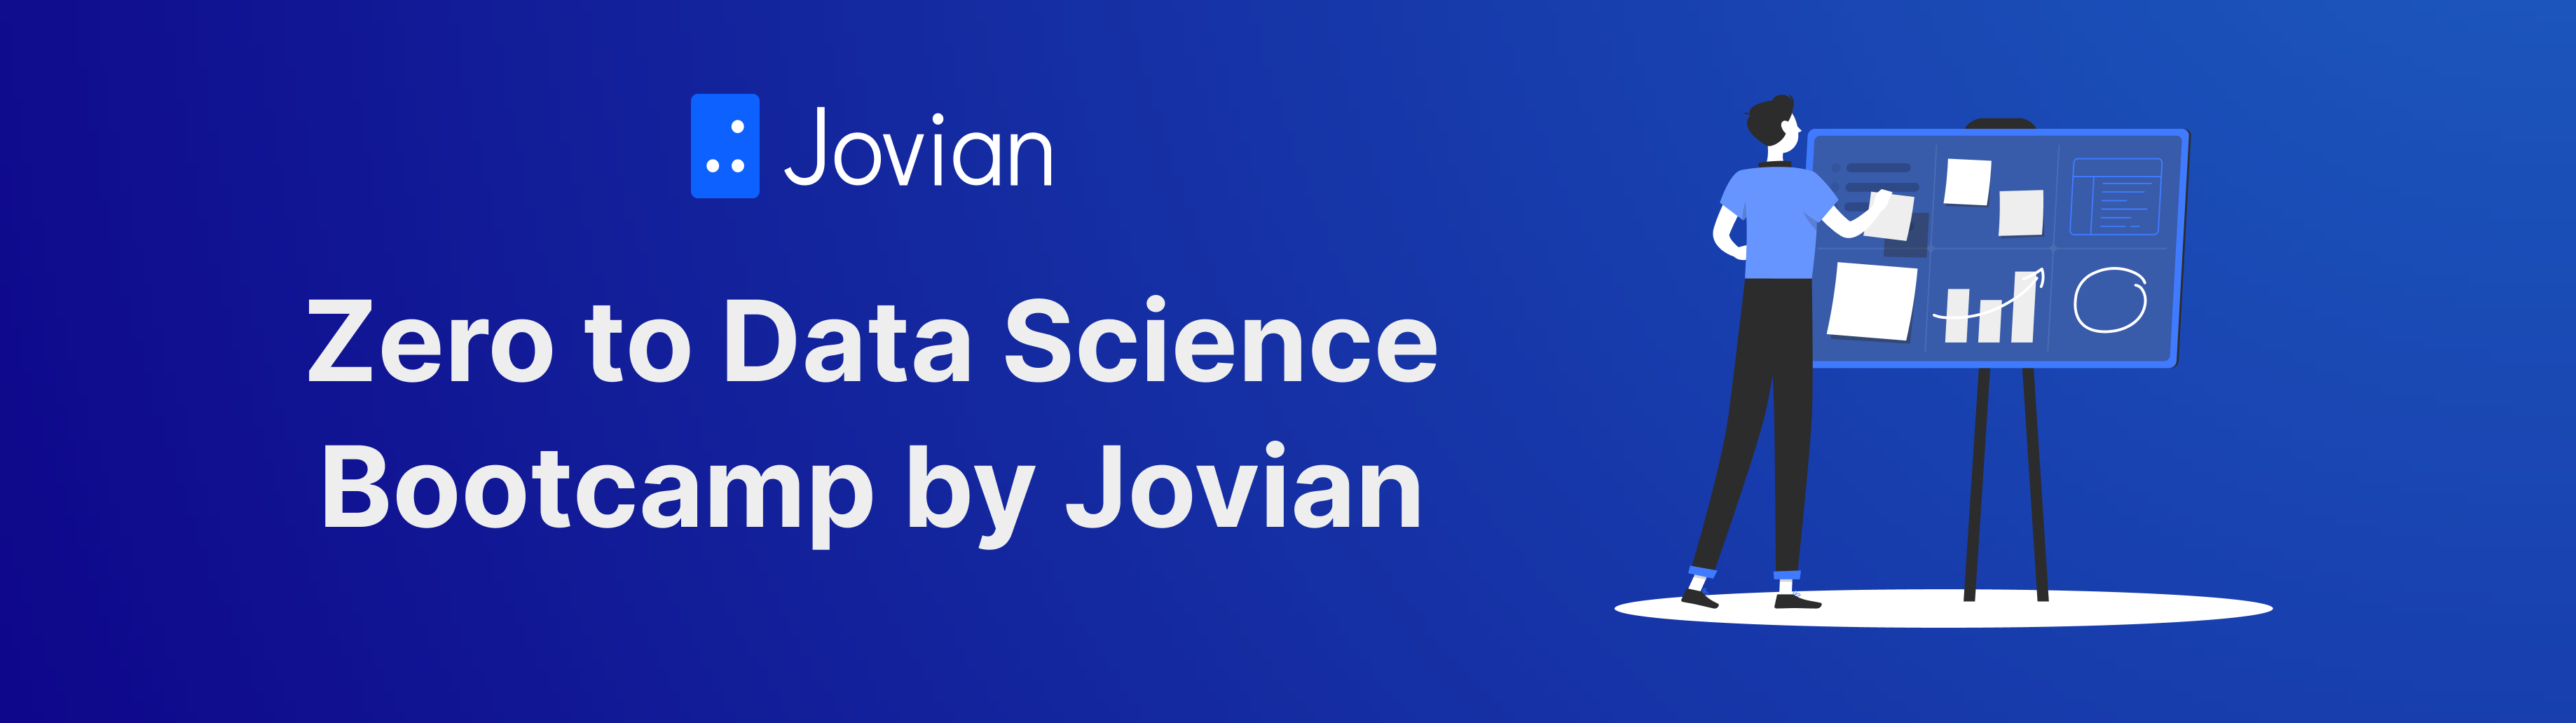 Zero to Data Science Bootcamp by Jovian